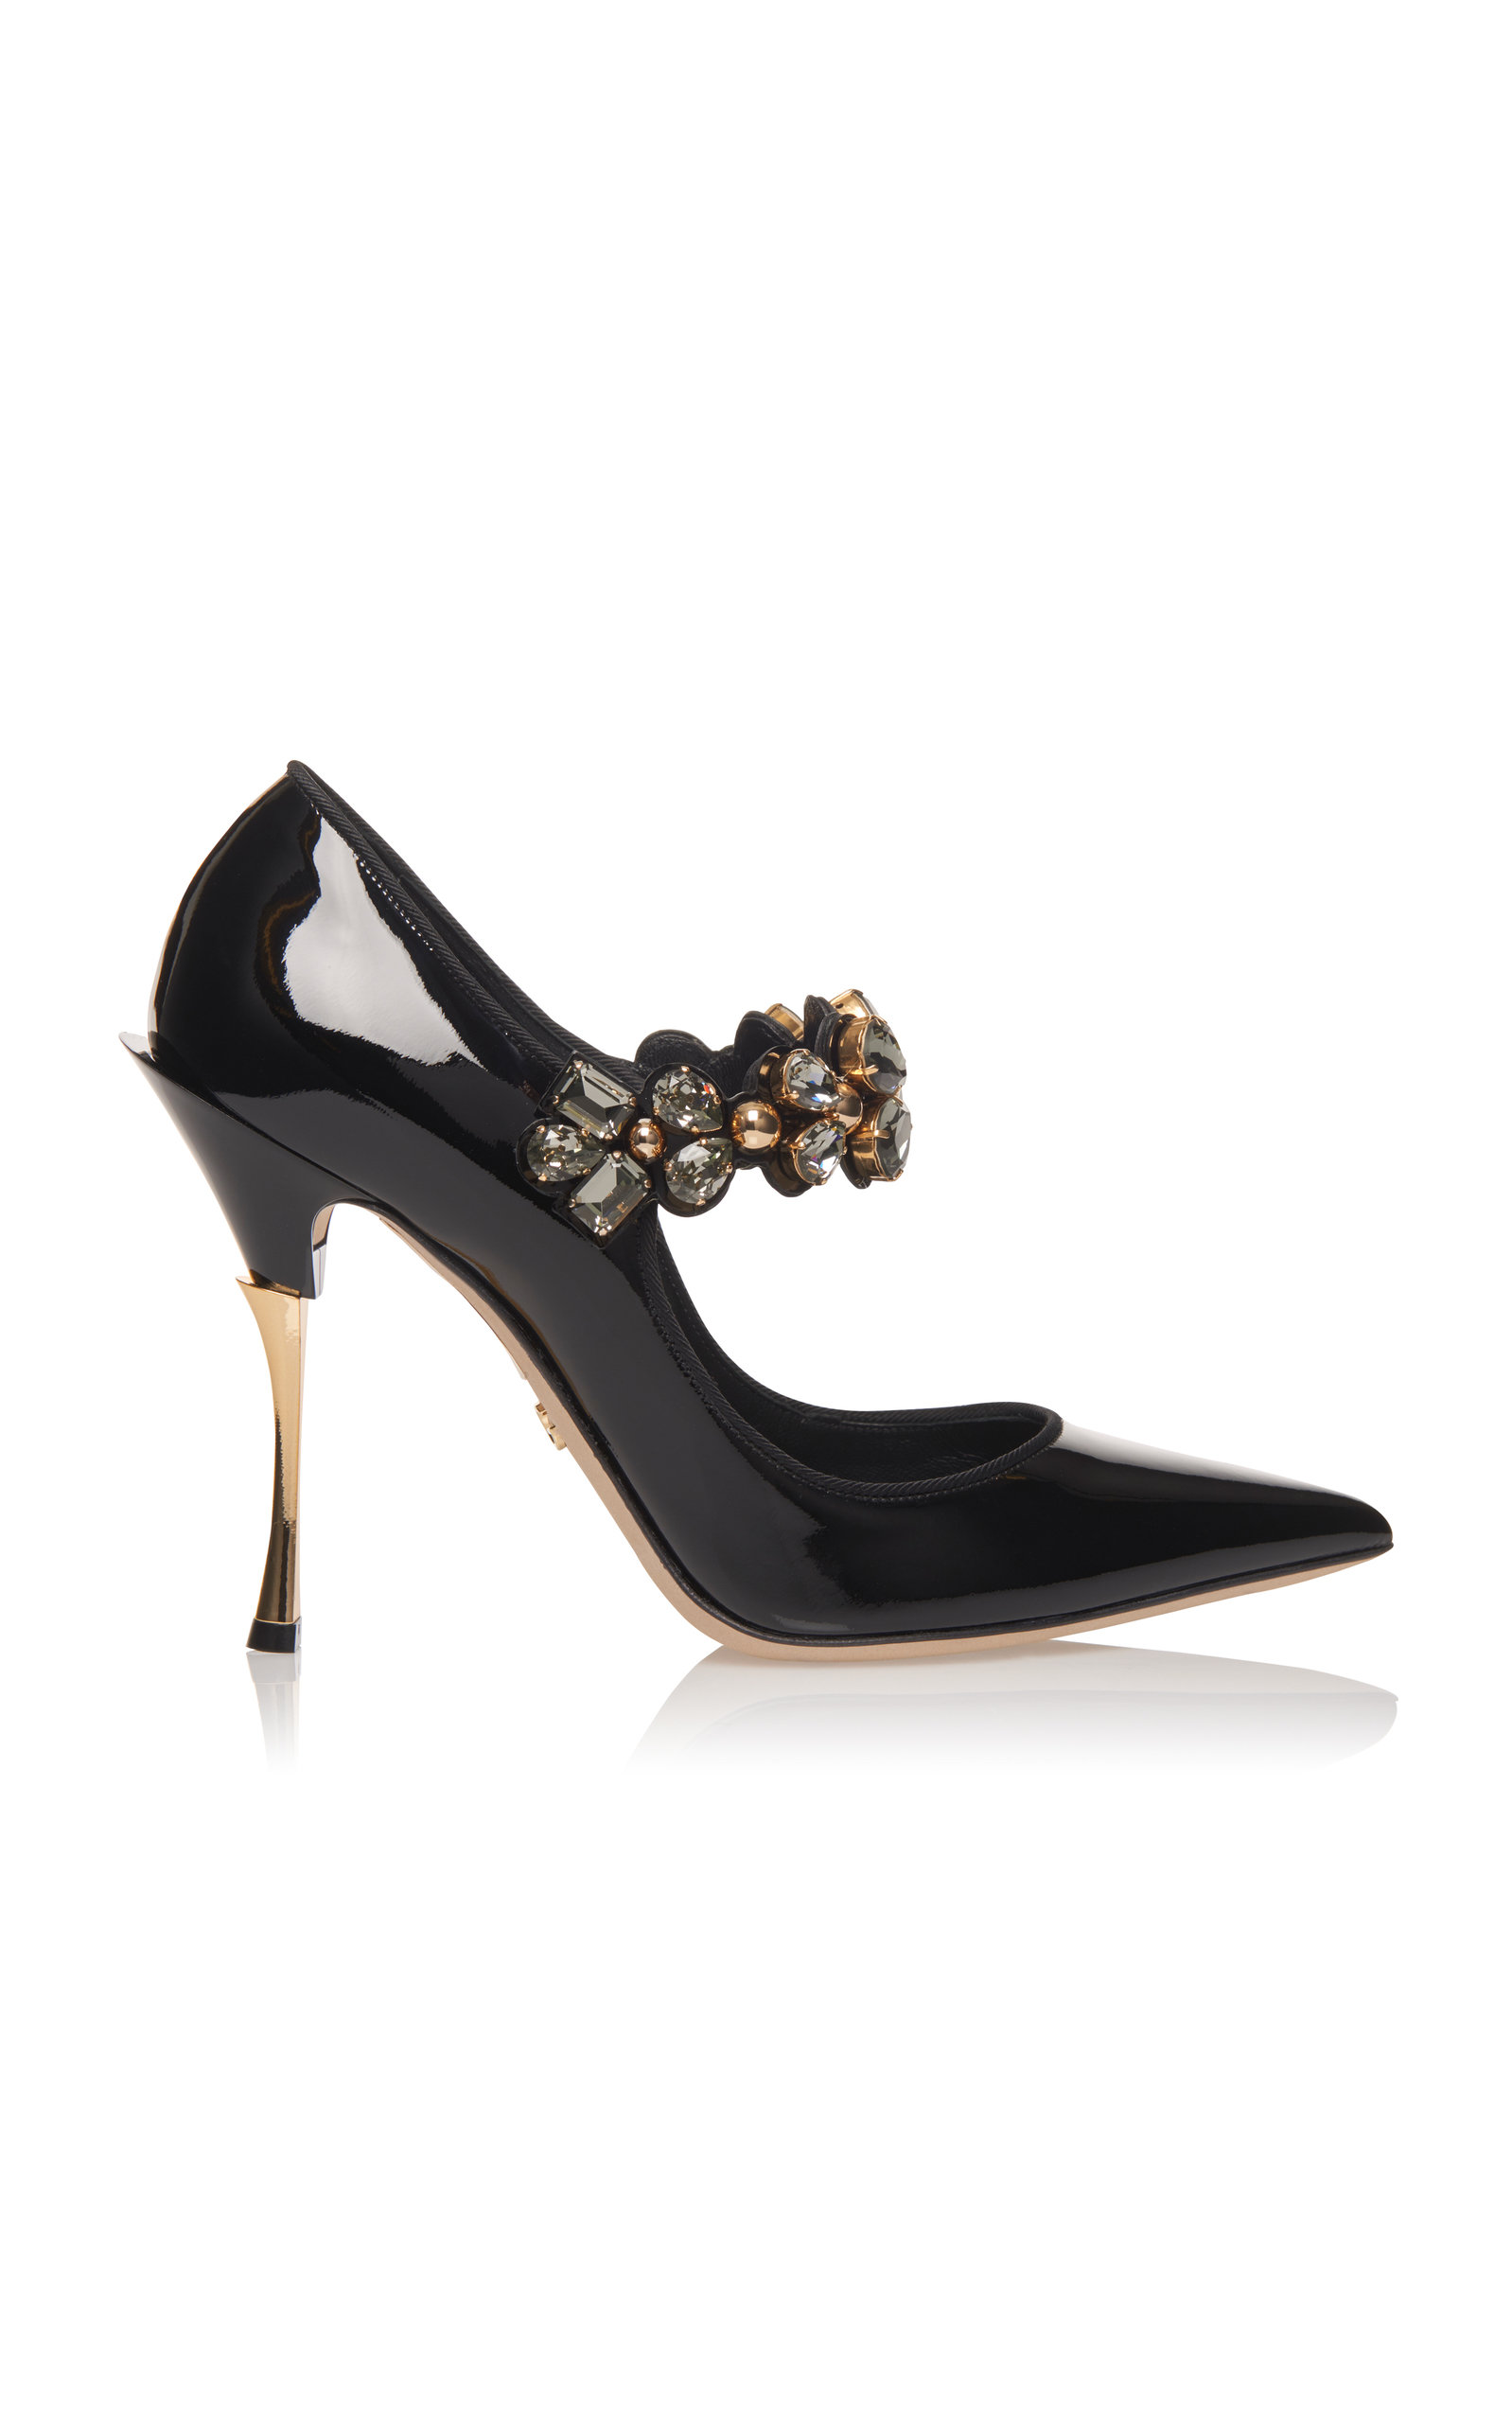 7161776352 Dolce & Gabbana Crystal-Embellished Patent-Leather Mary Jane Pumps In Black